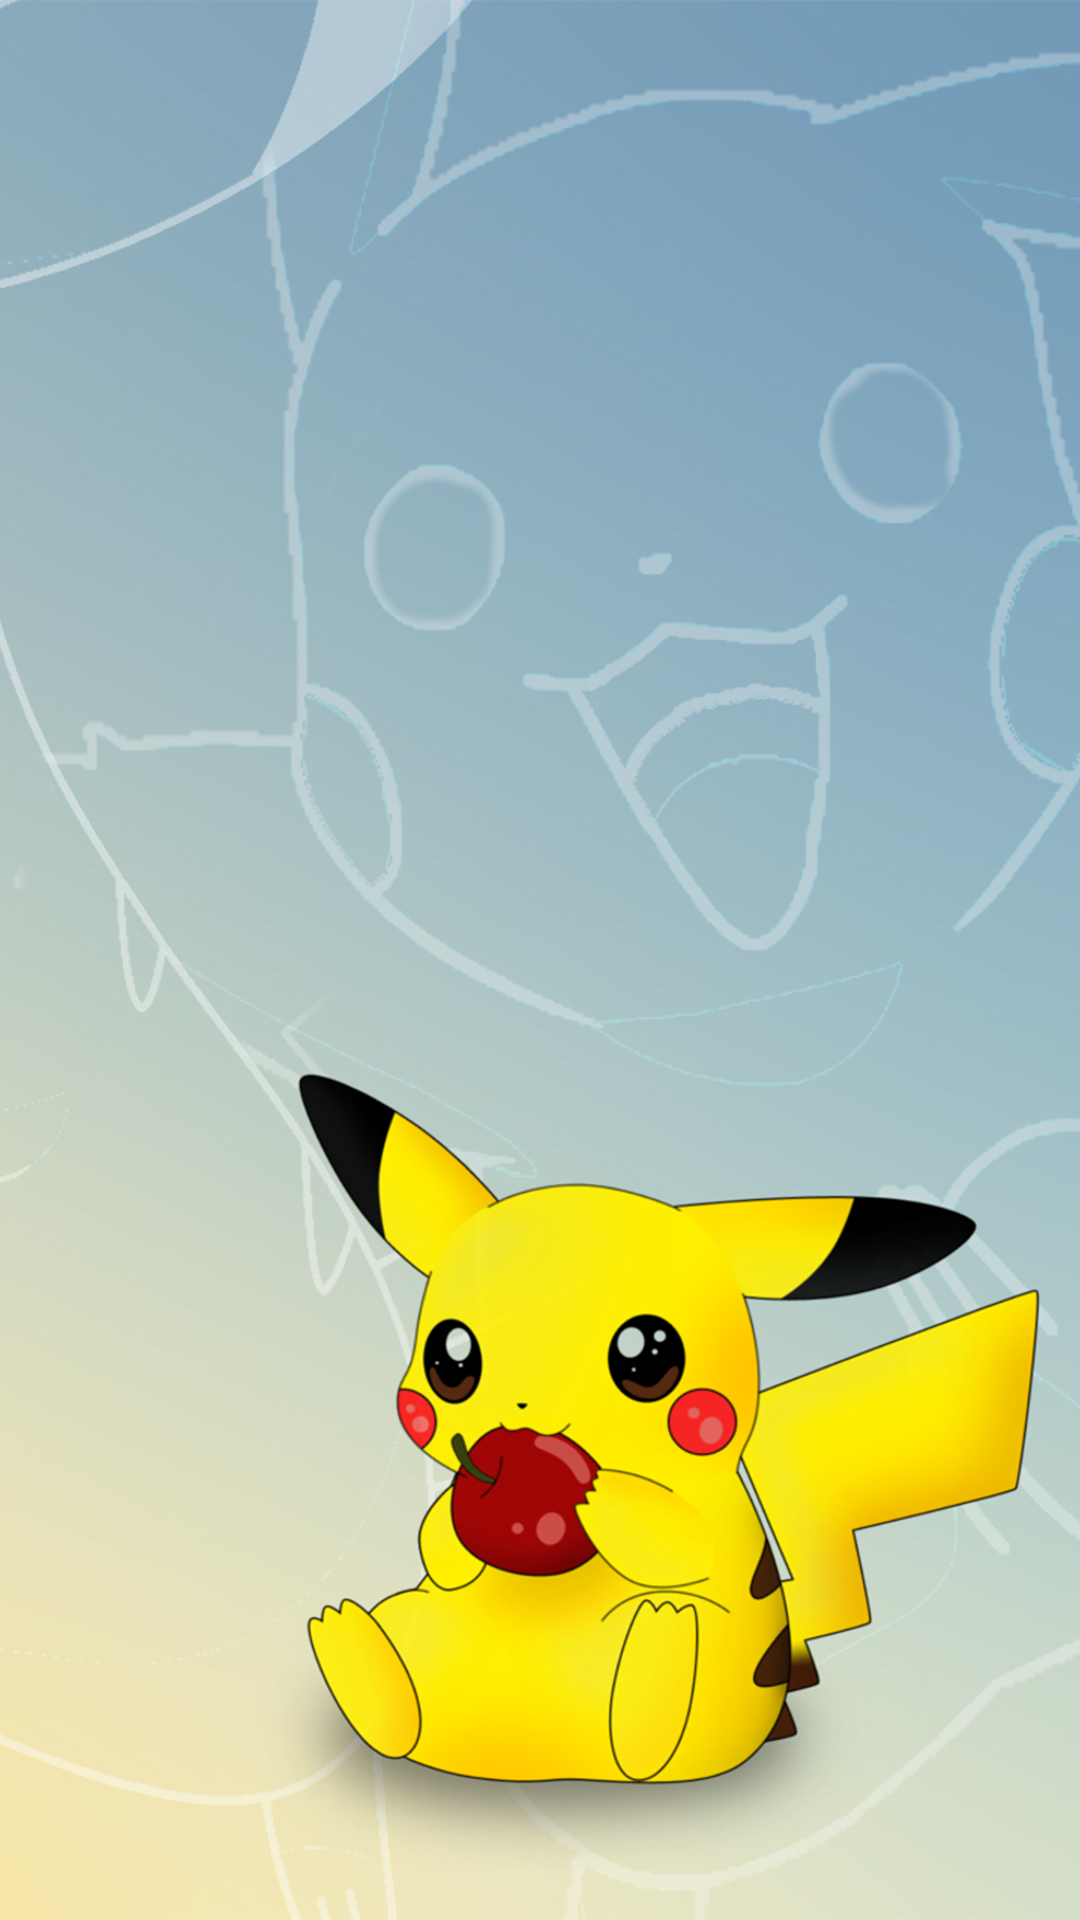 Download Pokemon Go Wallpapers for iPhone